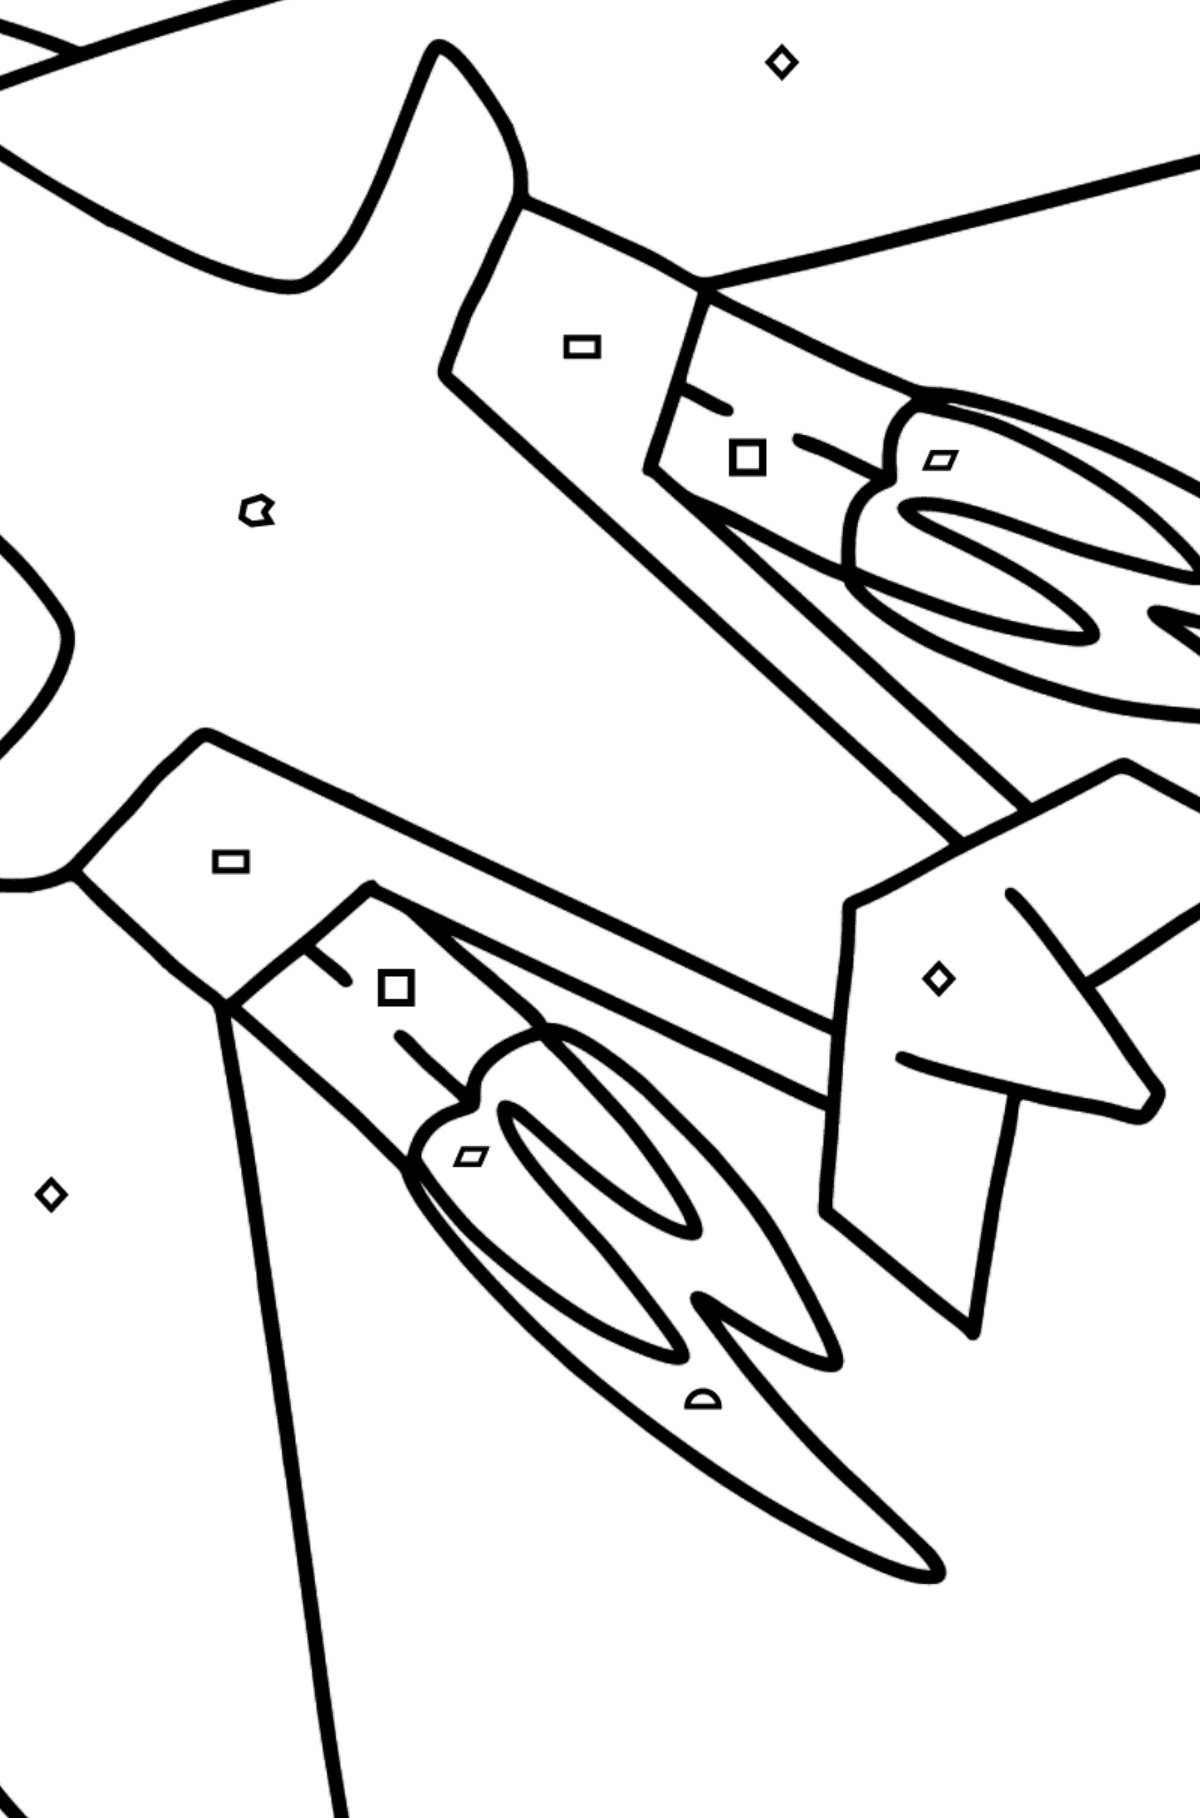 Airplane Tu-160 (White Swan) coloring page - Coloring by Geometric Shapes for Kids